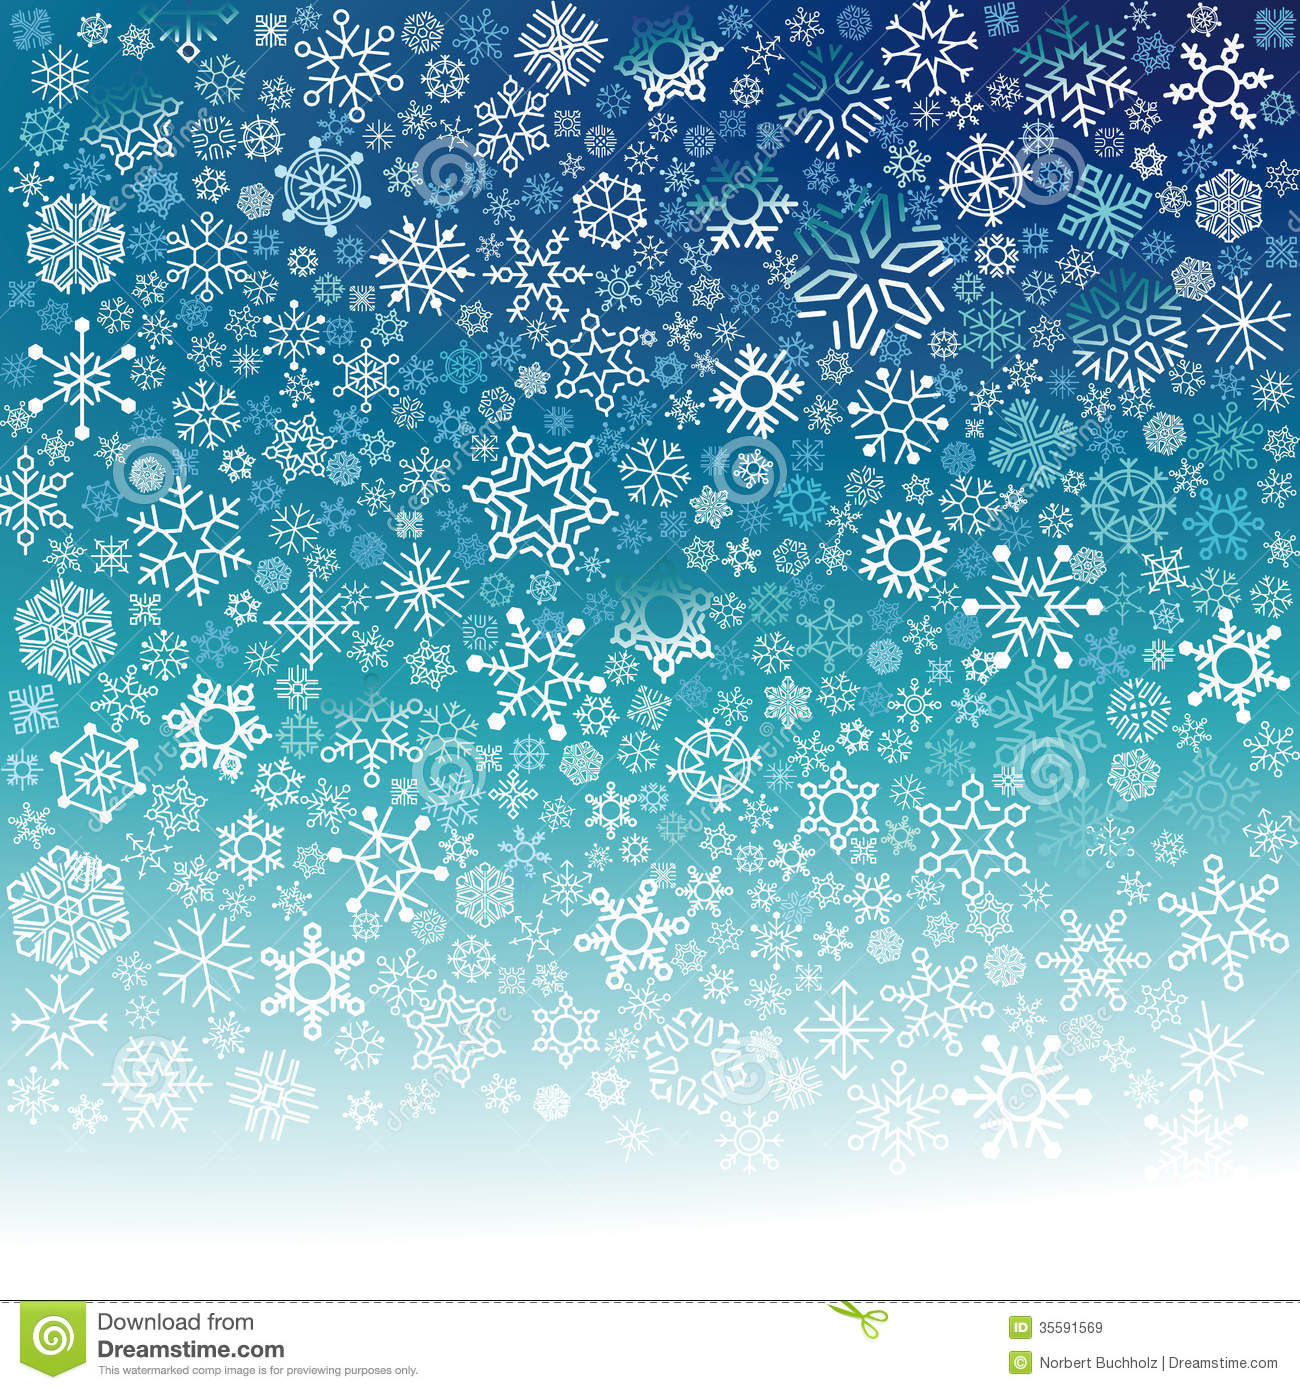 Christmas Snow Falling Wallpaper Falling Snowflakes Royalty Free Stock Images Image 35591569